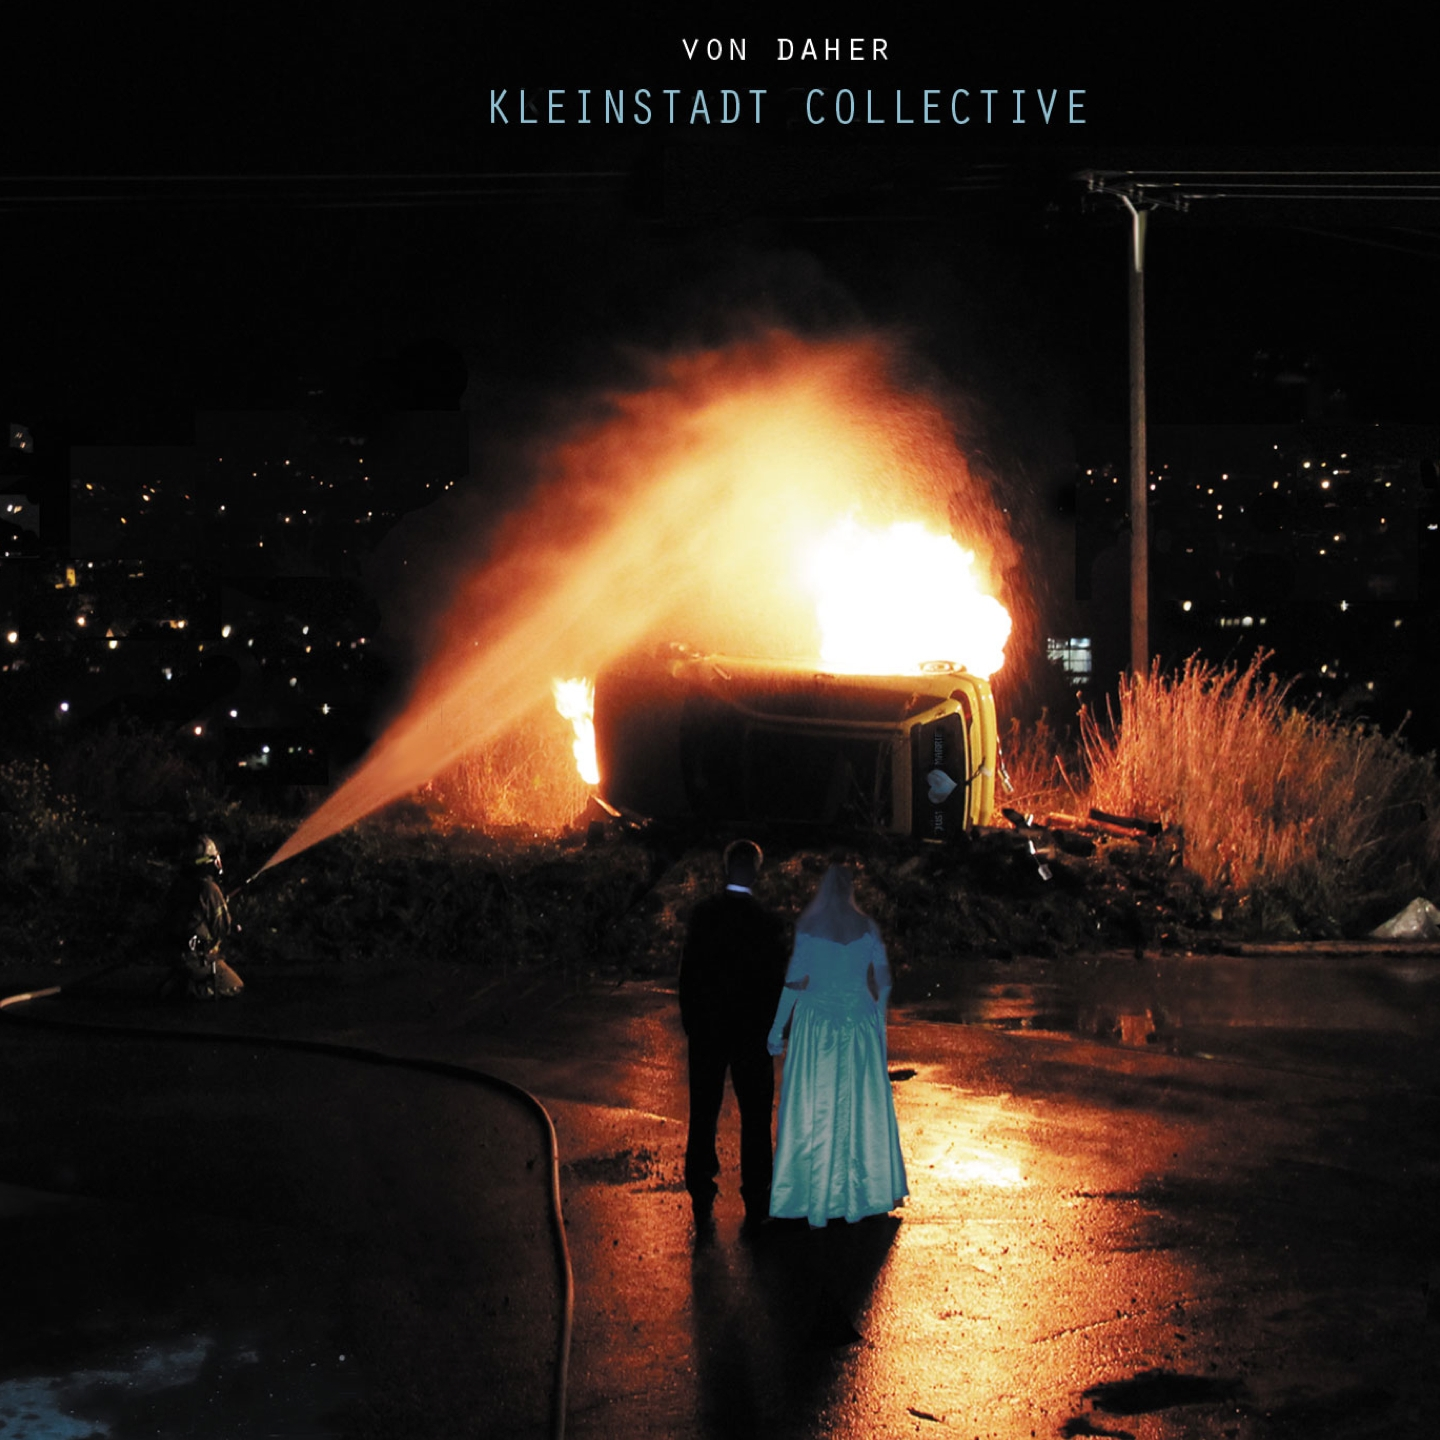 Kleinstadt Collective